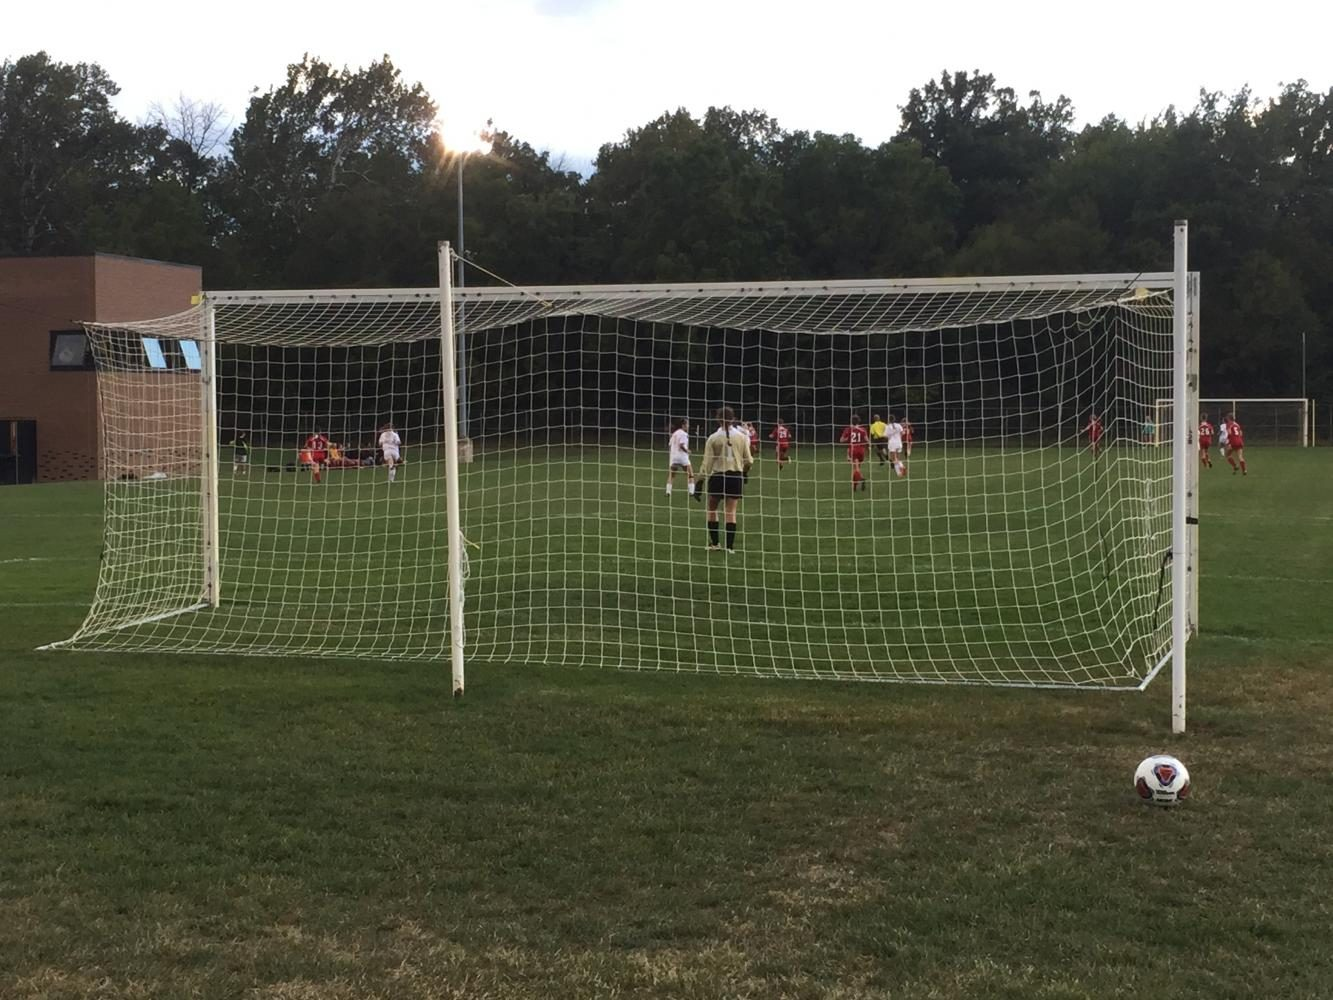 Photo of girls' soccer team practicing on the field